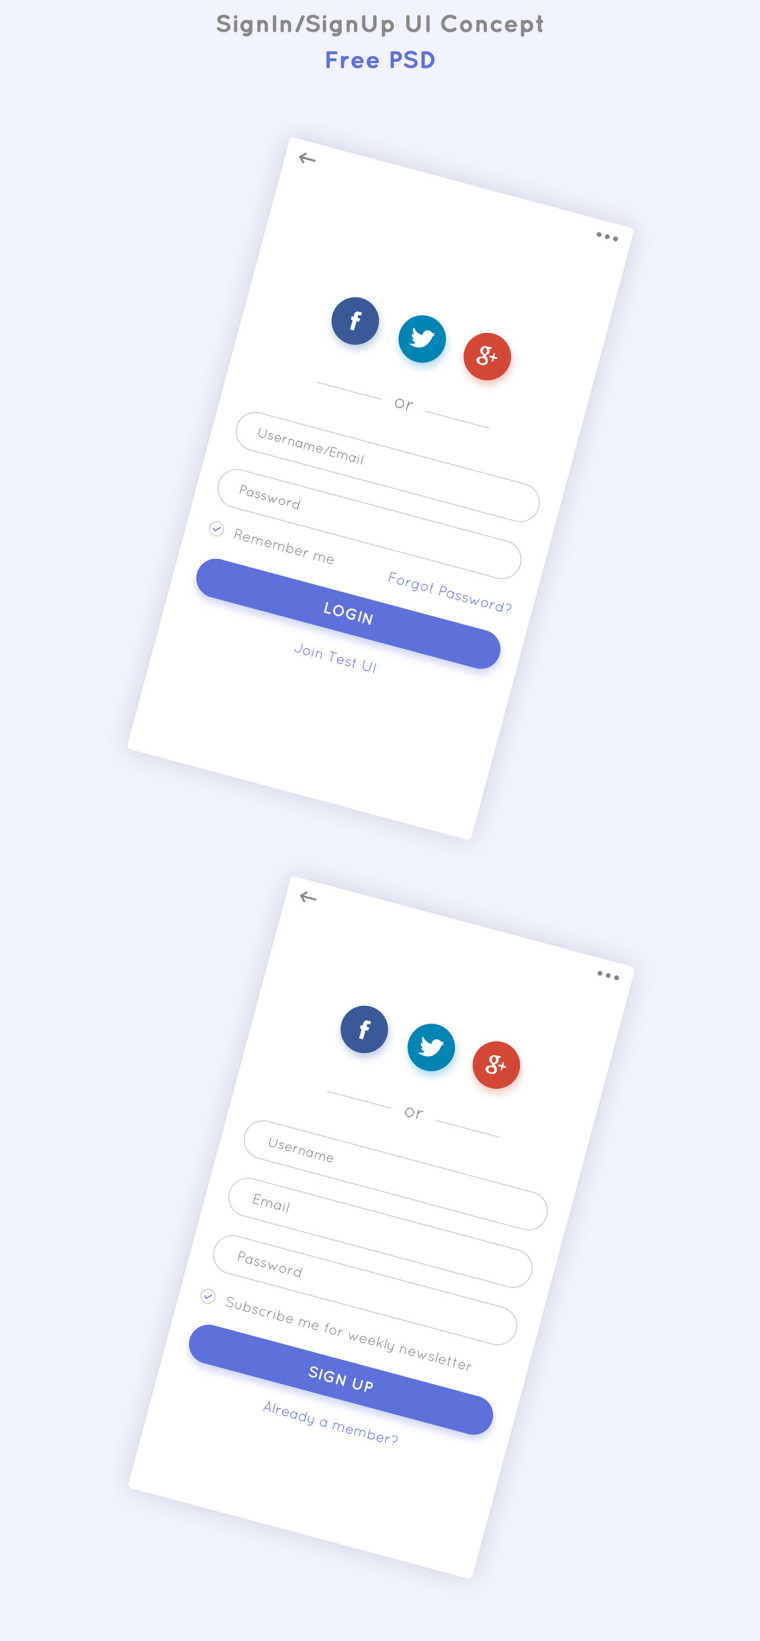 SIGNUP AND LOGIN UI DESIGN